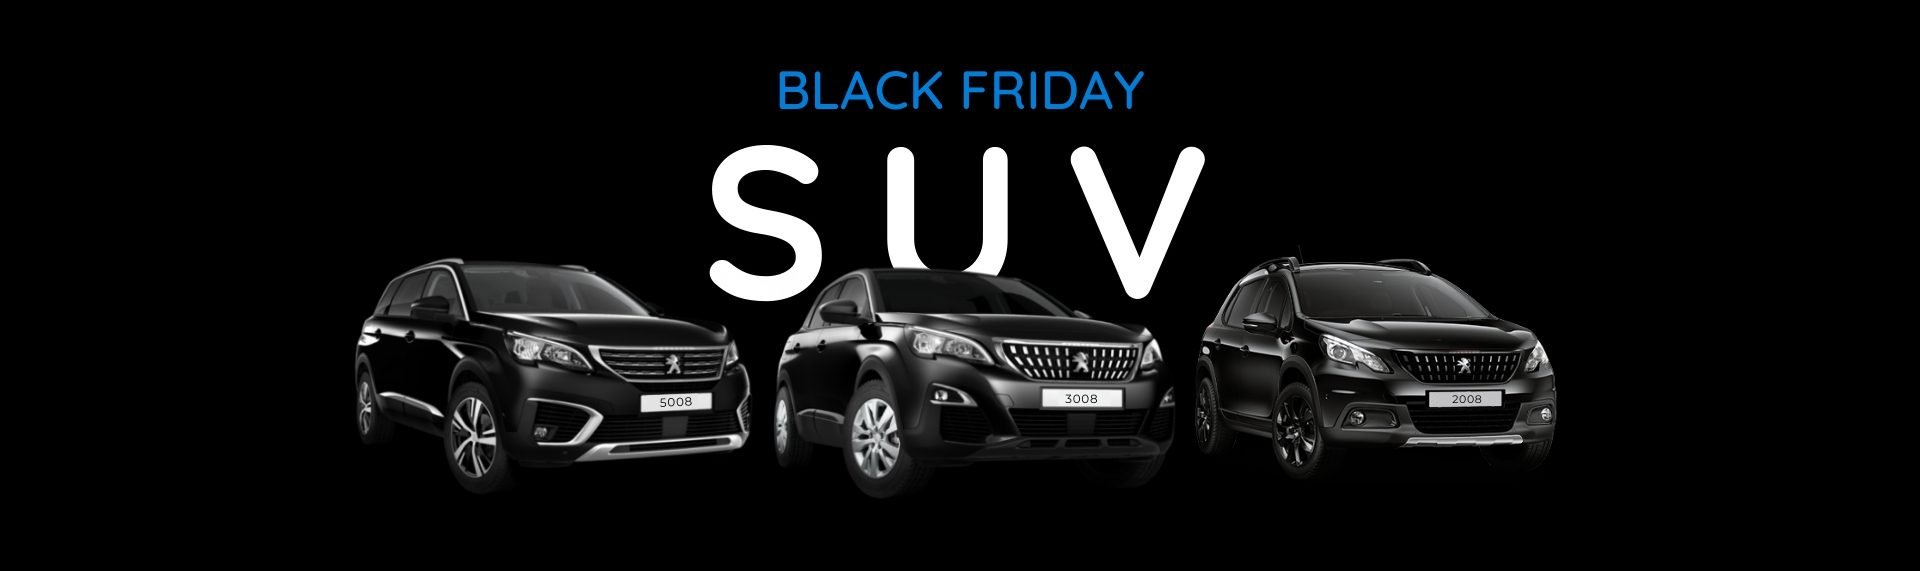 SUV Black Friday